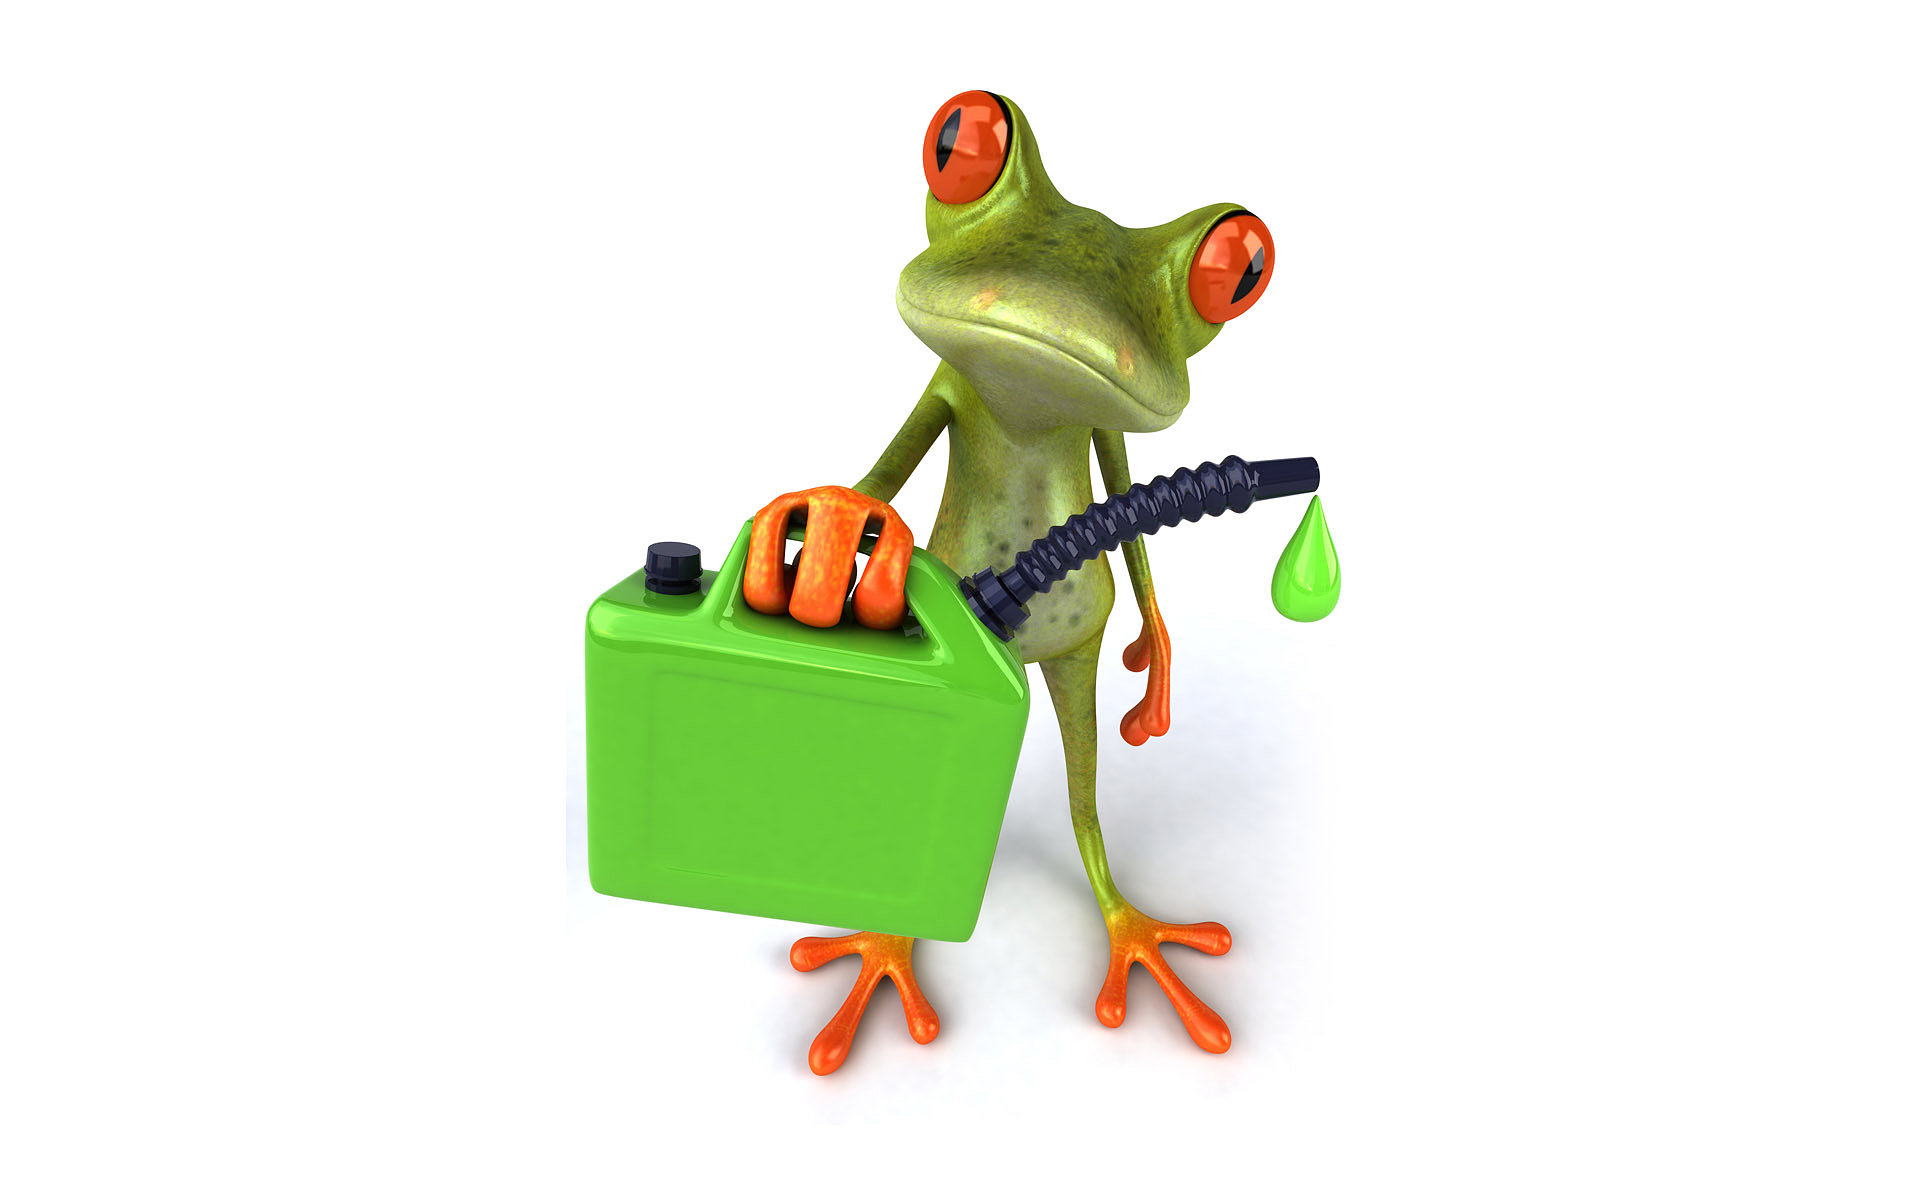 Green frog hd wallpaper background image 1920x1200 - Frog cartoon wallpaper ...